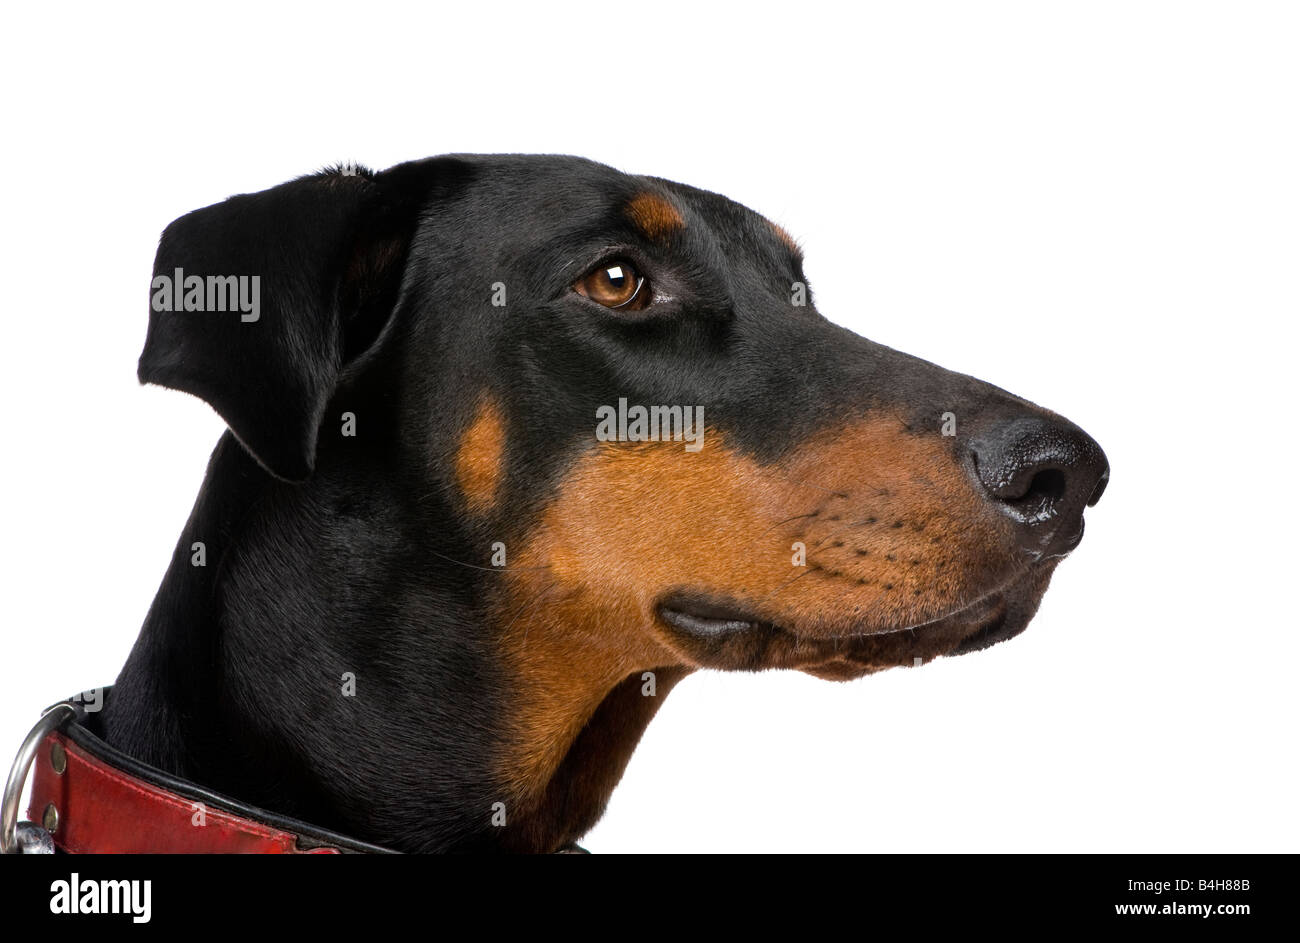 Doberman Pinscher (2 years) in front of a white background - Stock Image